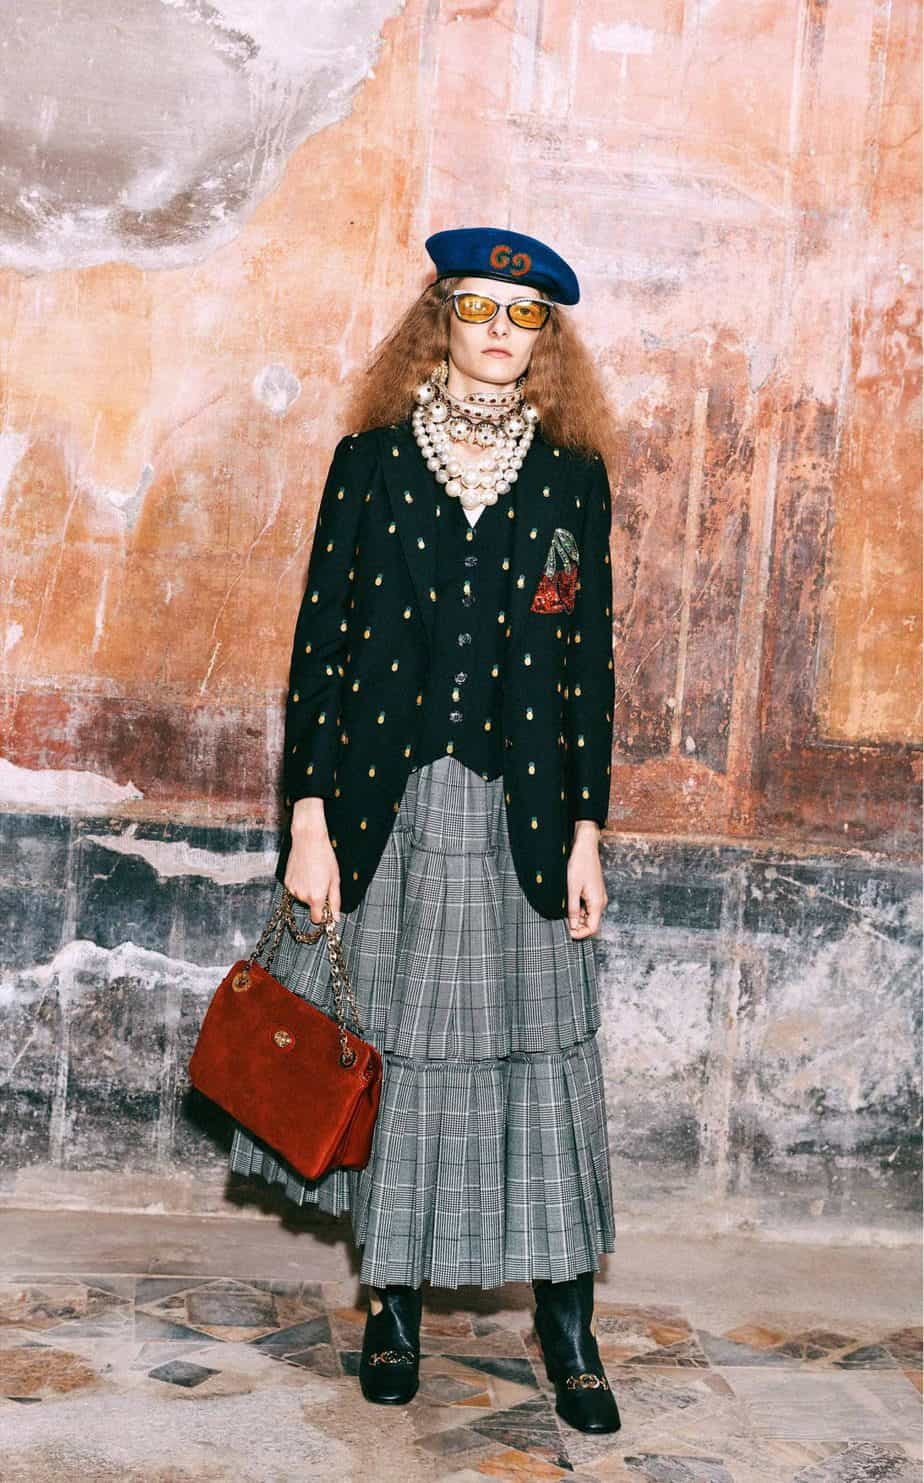 GUCCI, FALL 2019. WOMEN'S FASHION, Photographer Harmony Korine, Art Director, Christopher Simmonds - 12